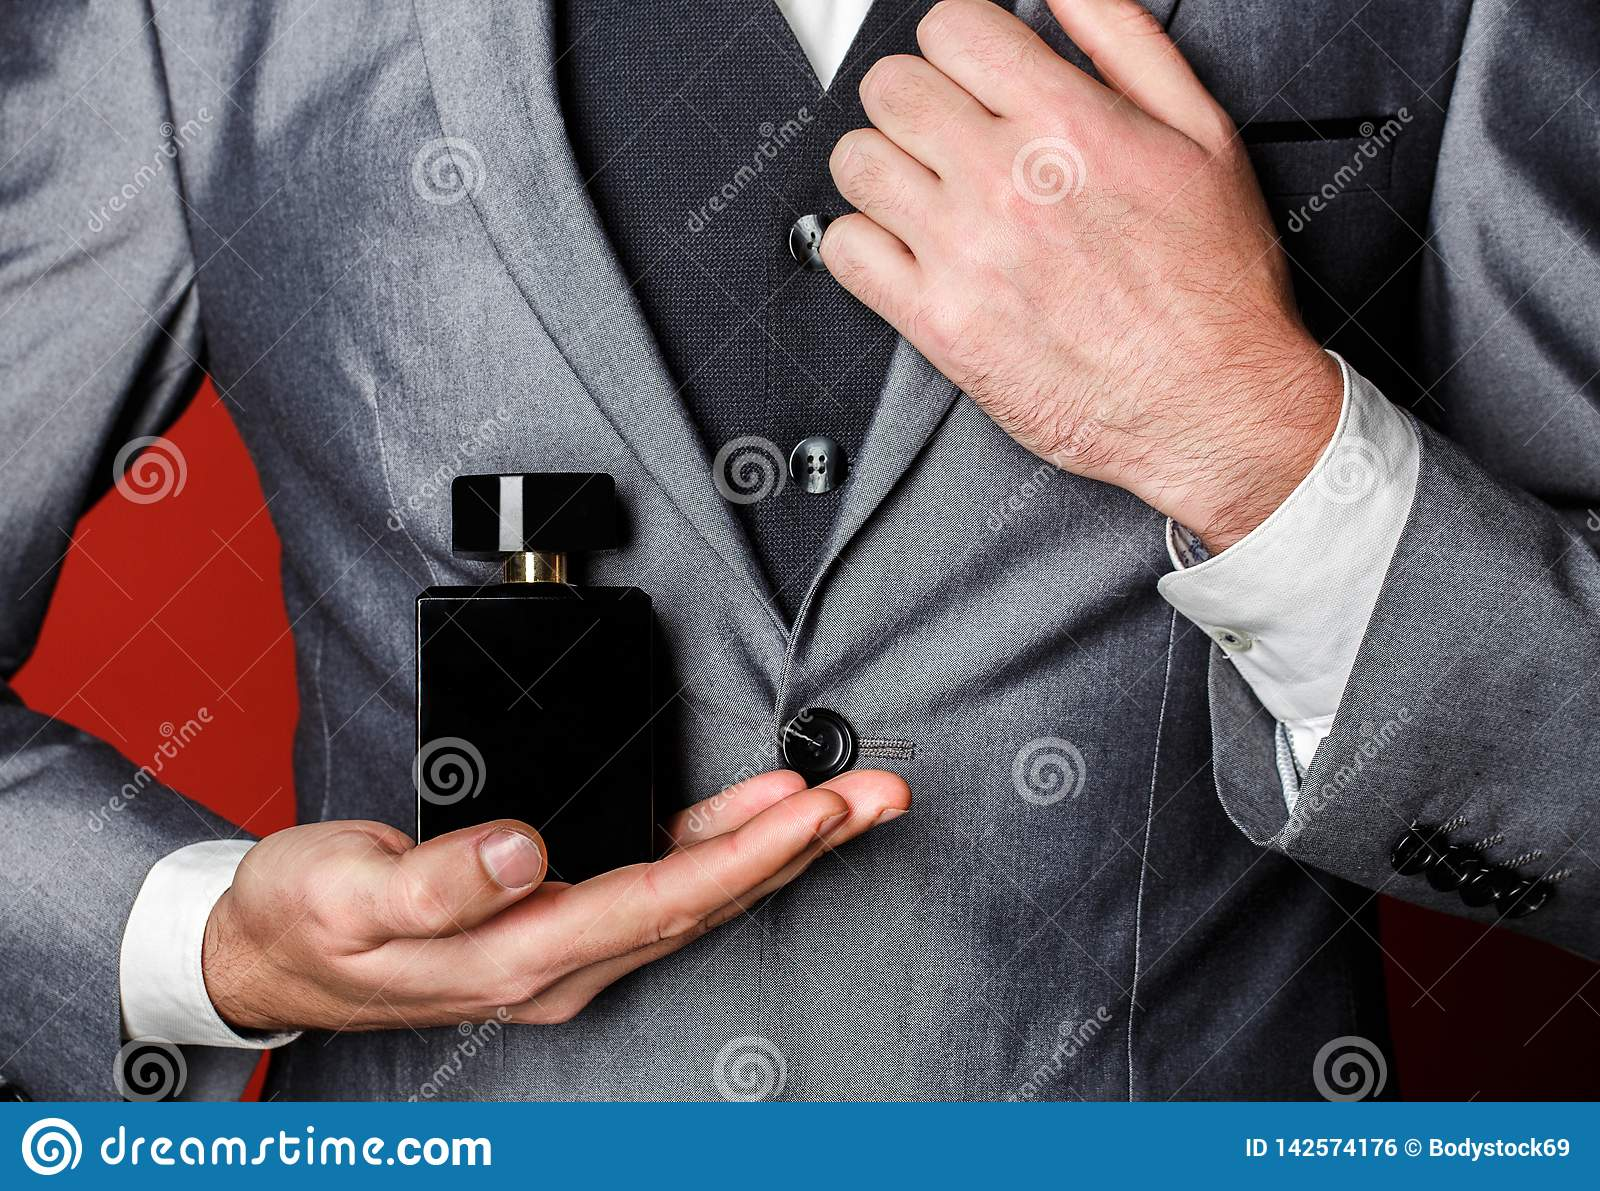 Fragrance smell. Male fragrance, perfumery, cosmetics. Smell perfume. Expensive suit. Rich man prefers expensive